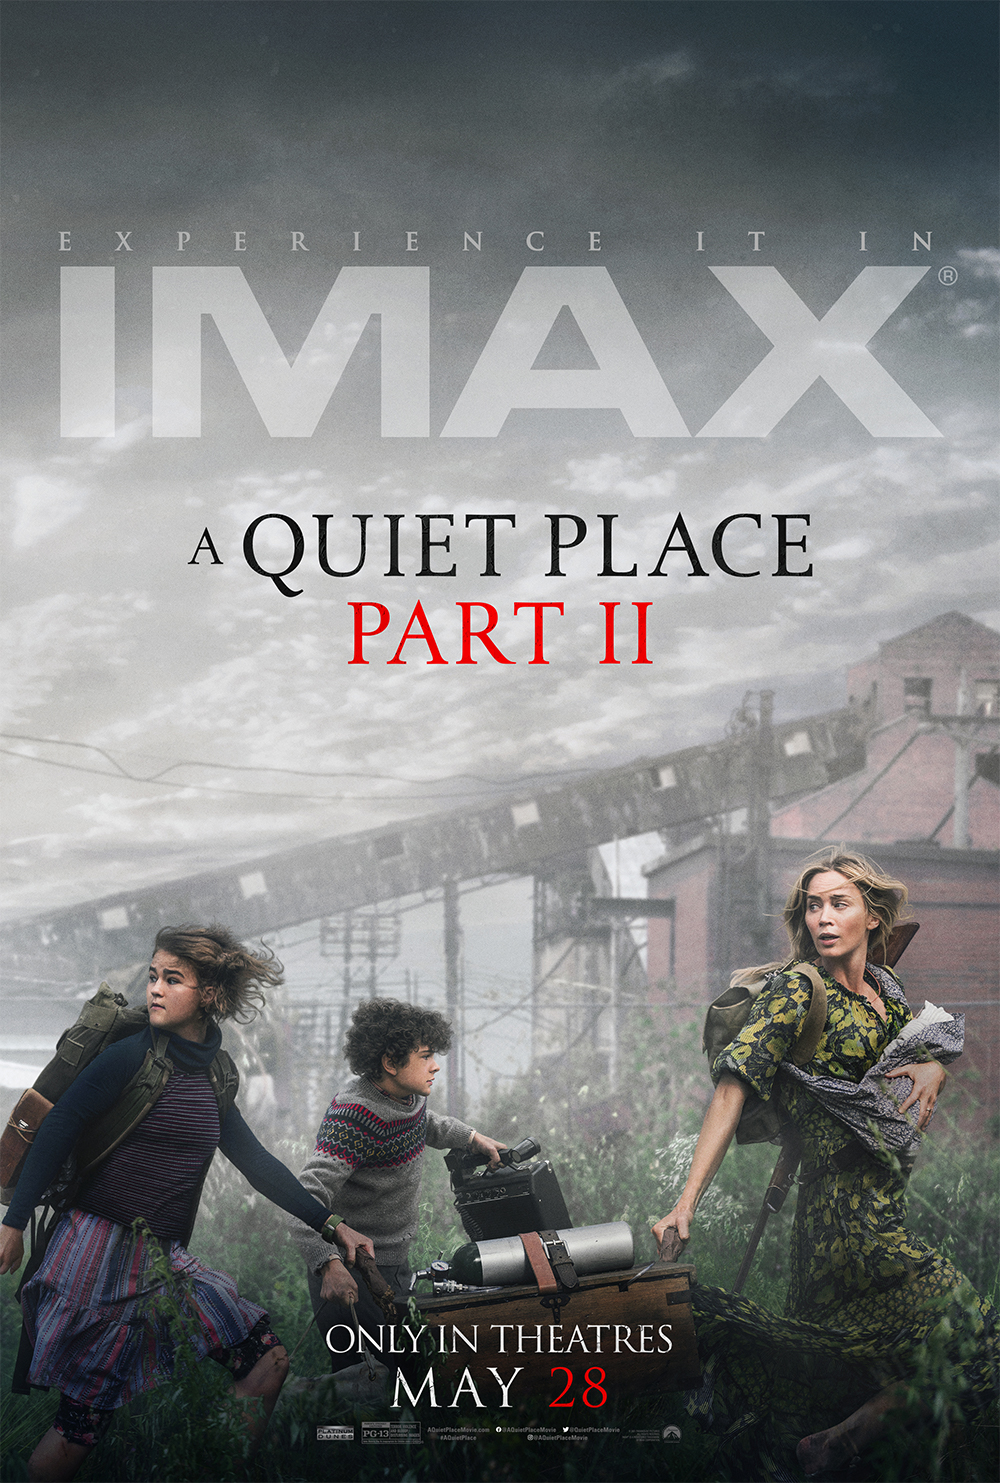 Movie poster image for A QUIET PLACE PART II in IMAX